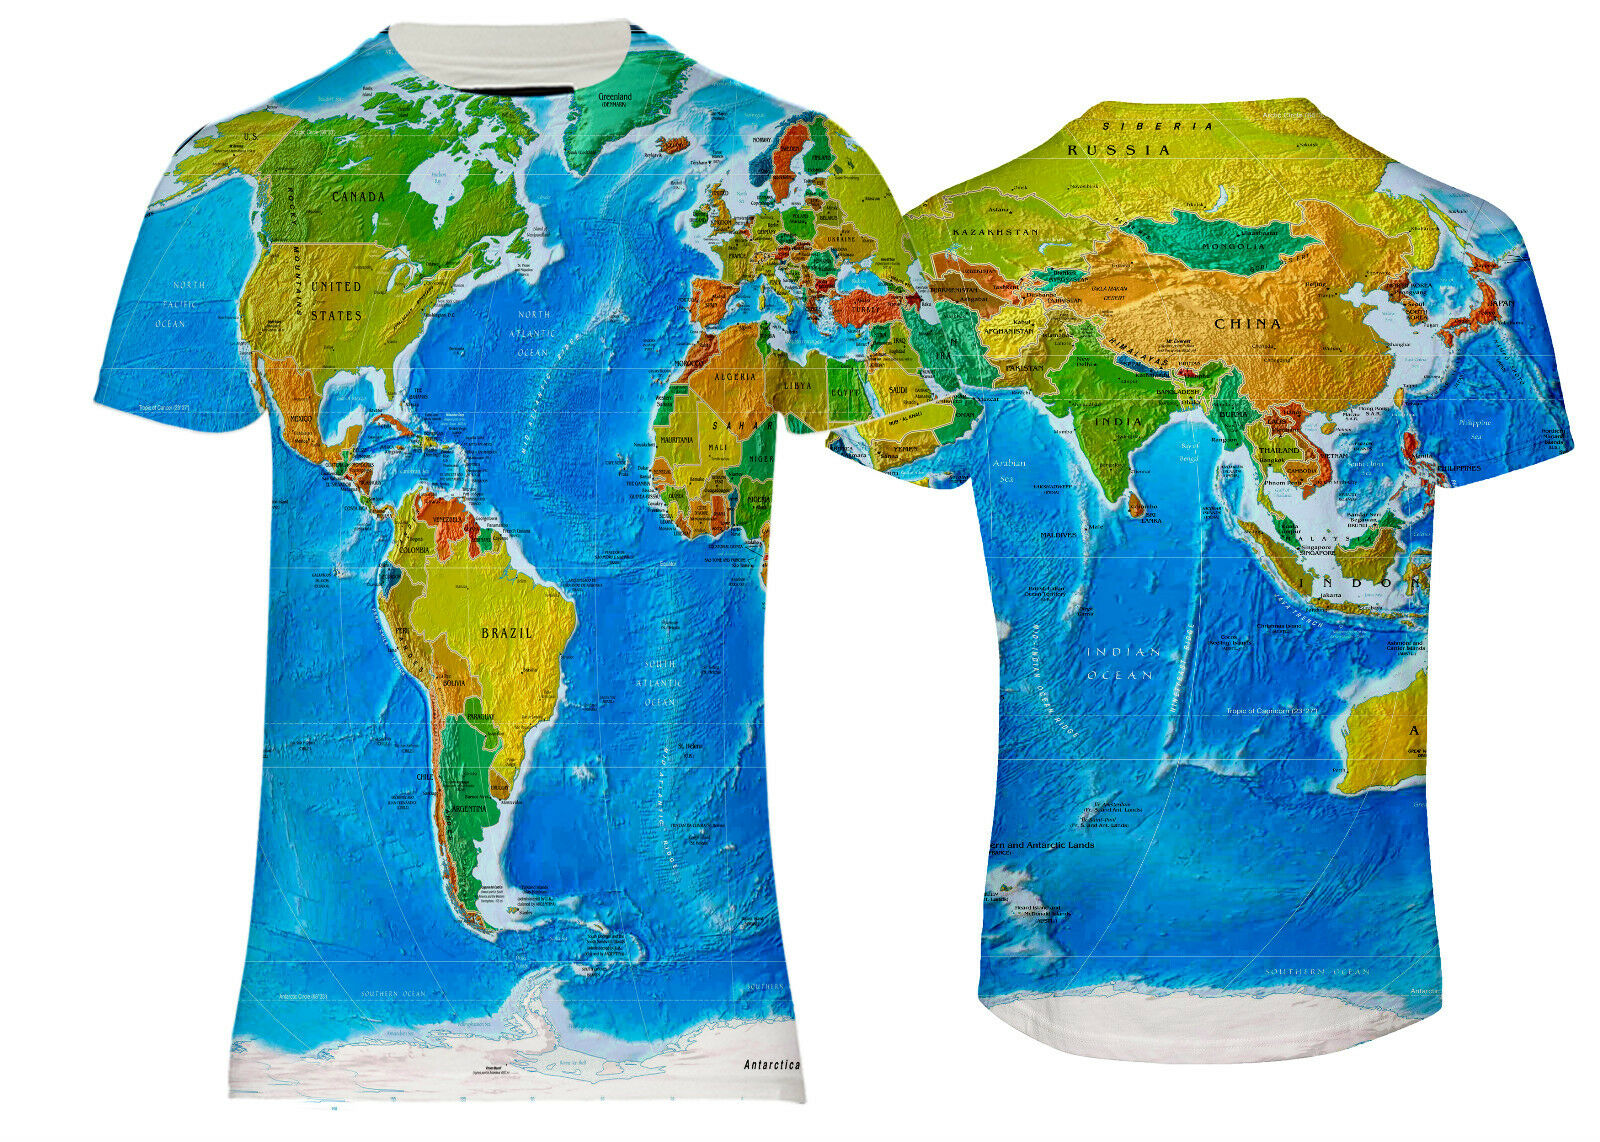 NEW AMERICA , ASIA , EUROPE WORLD MAP GLOBUS OVER PRINTED PRINTED T-SHIRT